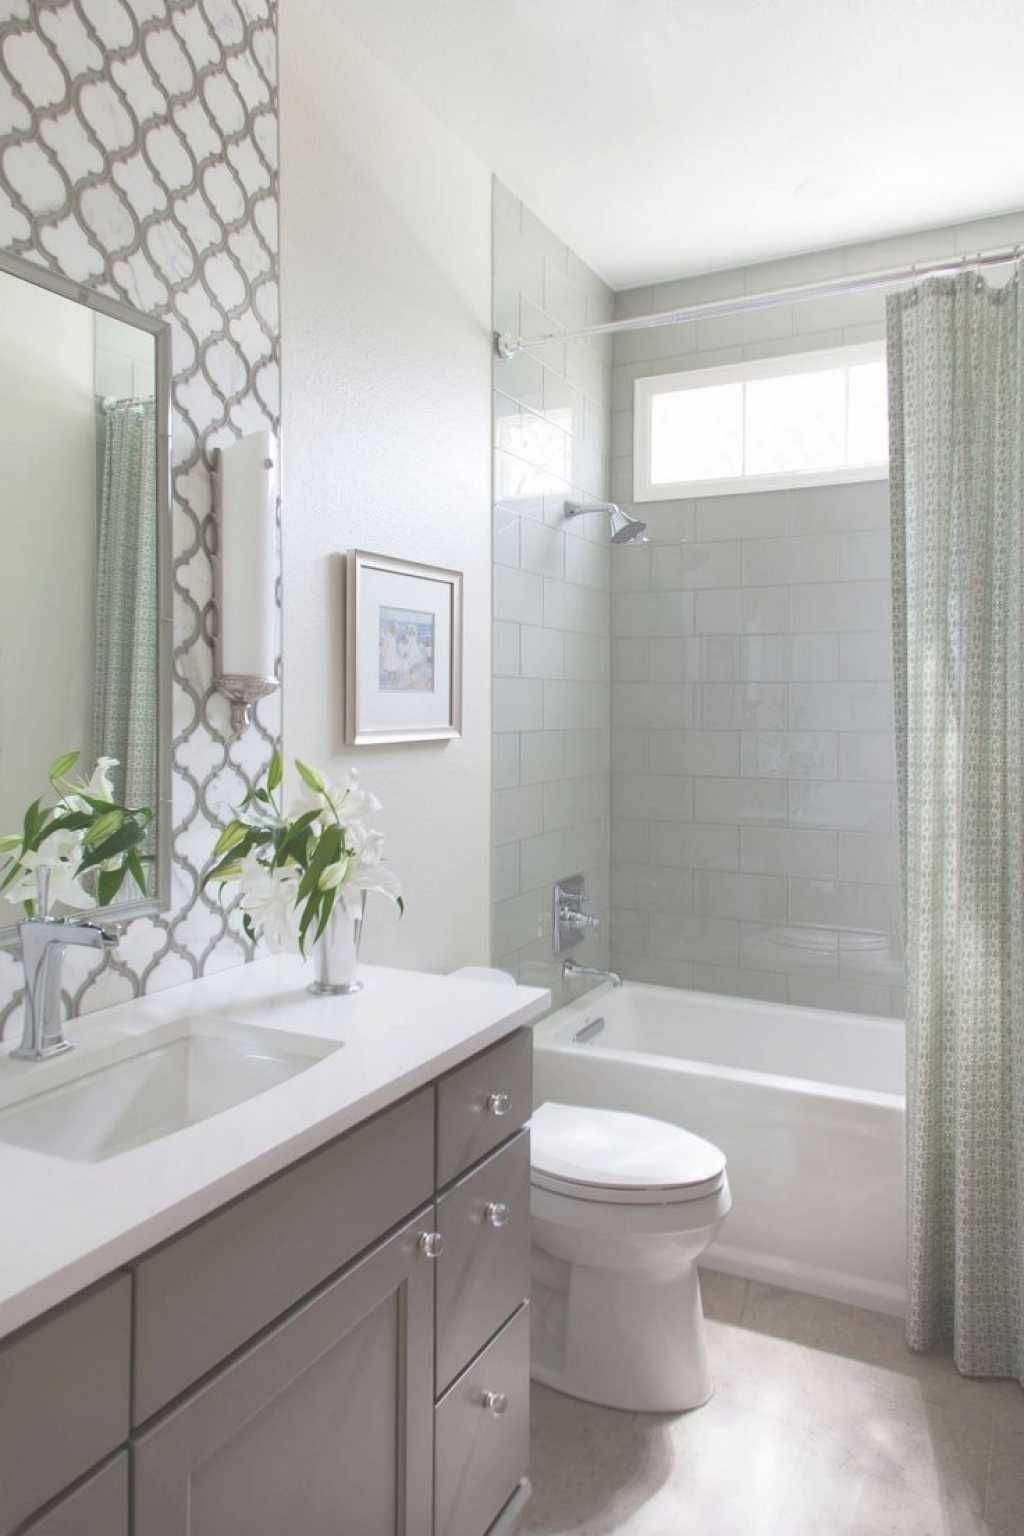 33 Inspirational Small Bathroom Remodel Before And After My Home